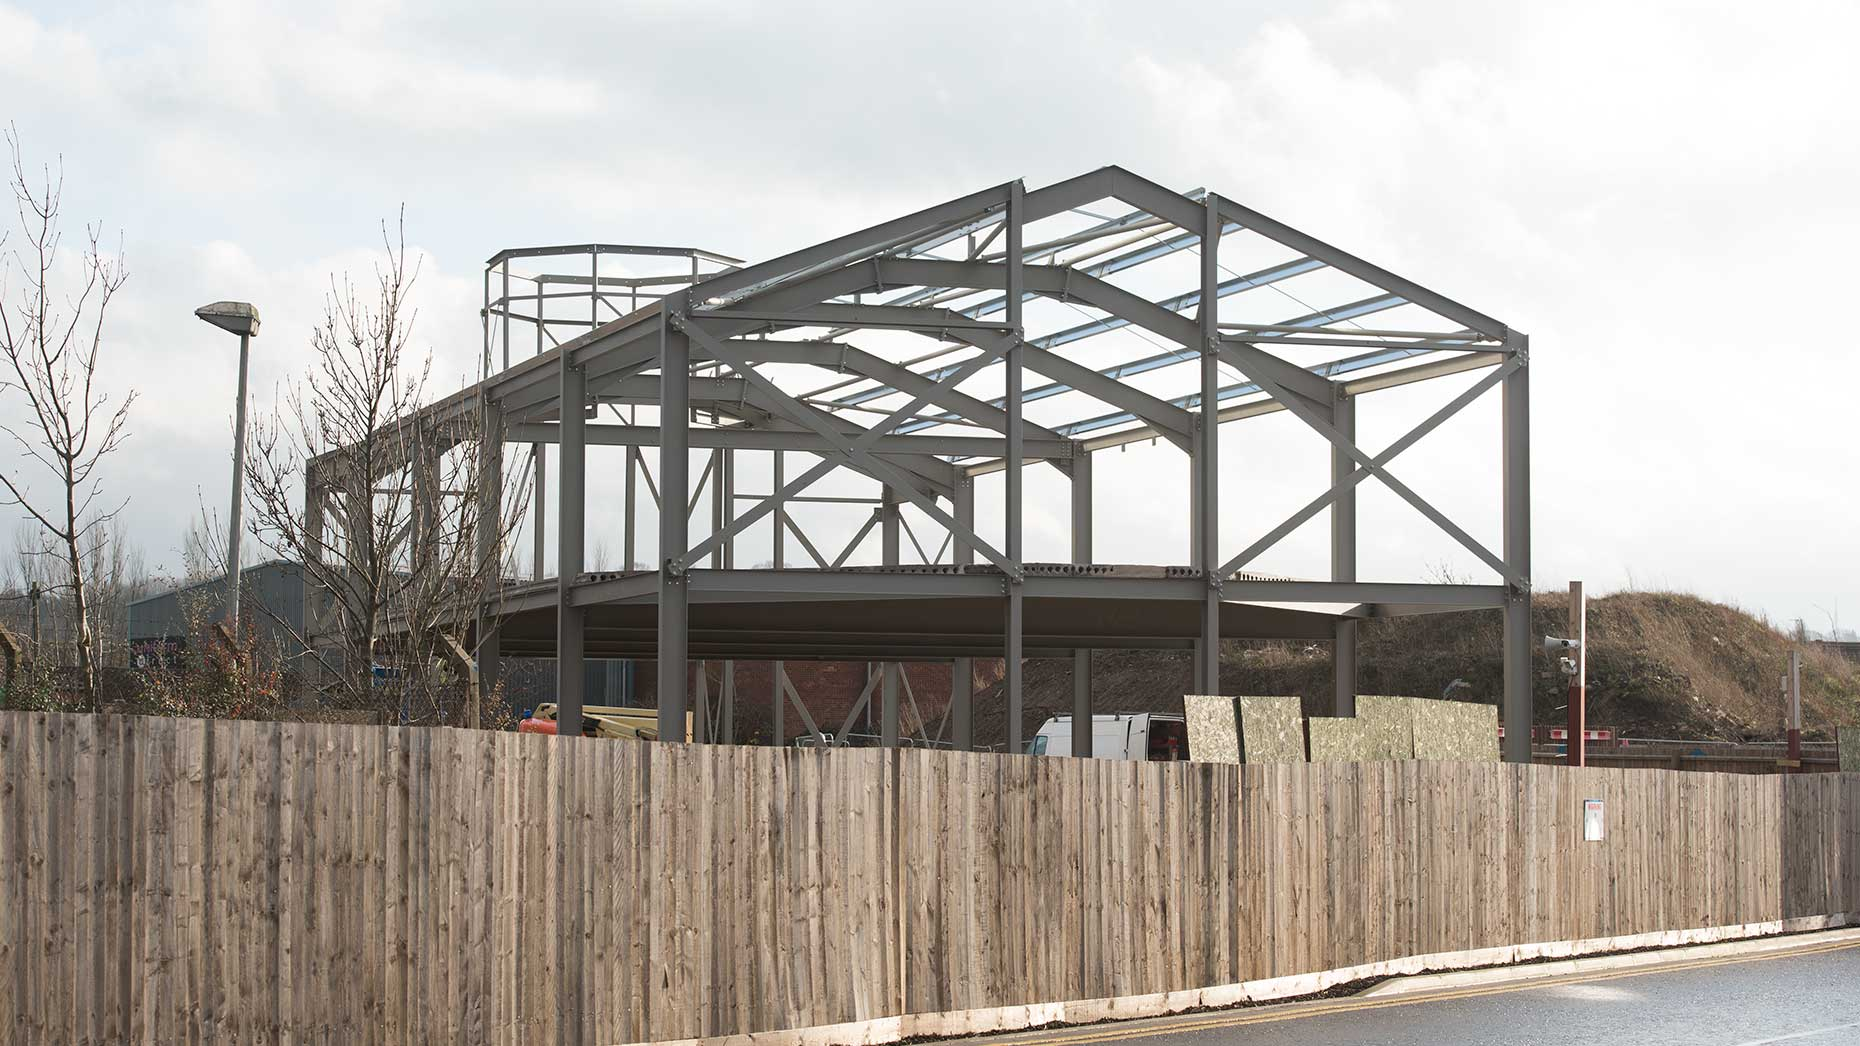 Construction work on the mosque has been temporarily put on hold. Photo: Steve Smailes for The Lincolnite